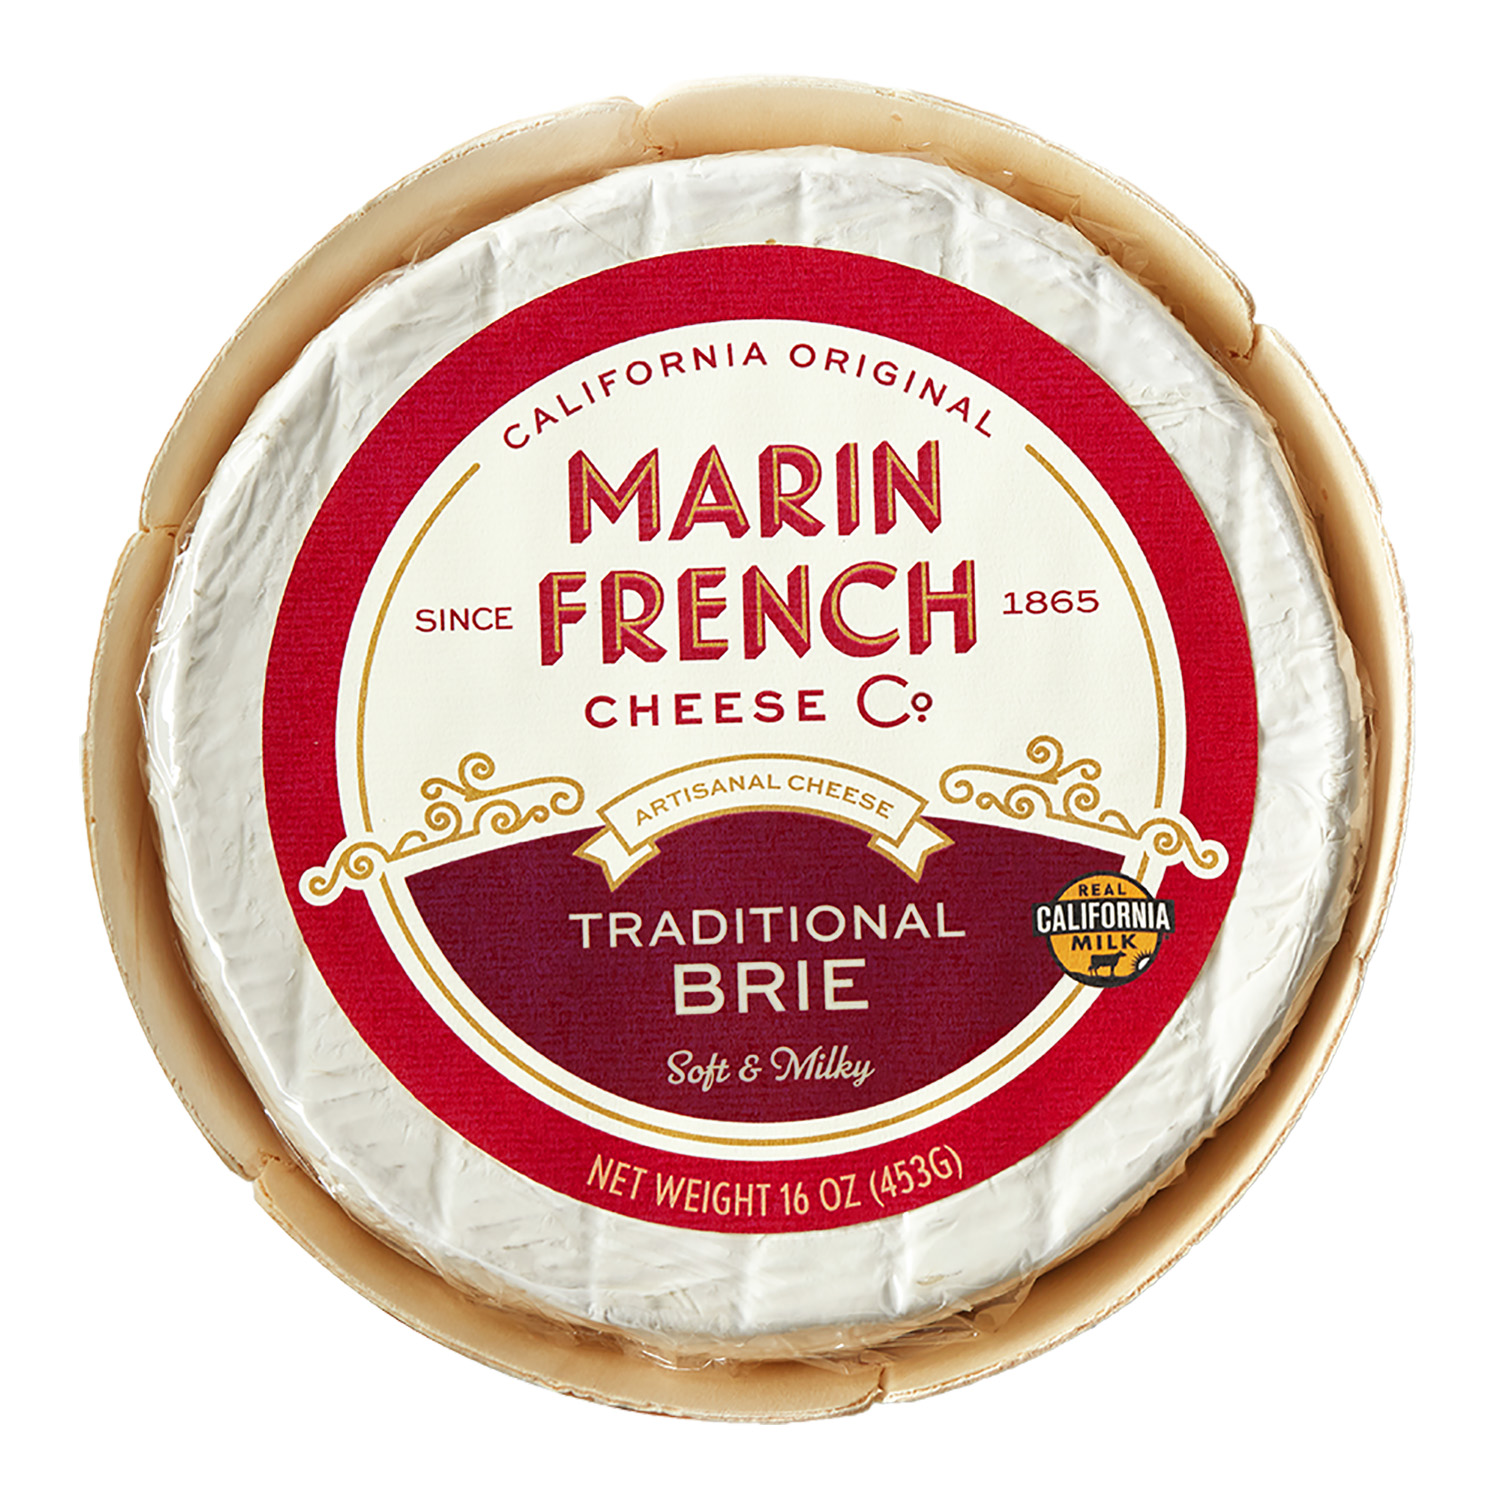 MFC_16oz Traditional Brie Front Label_High Res